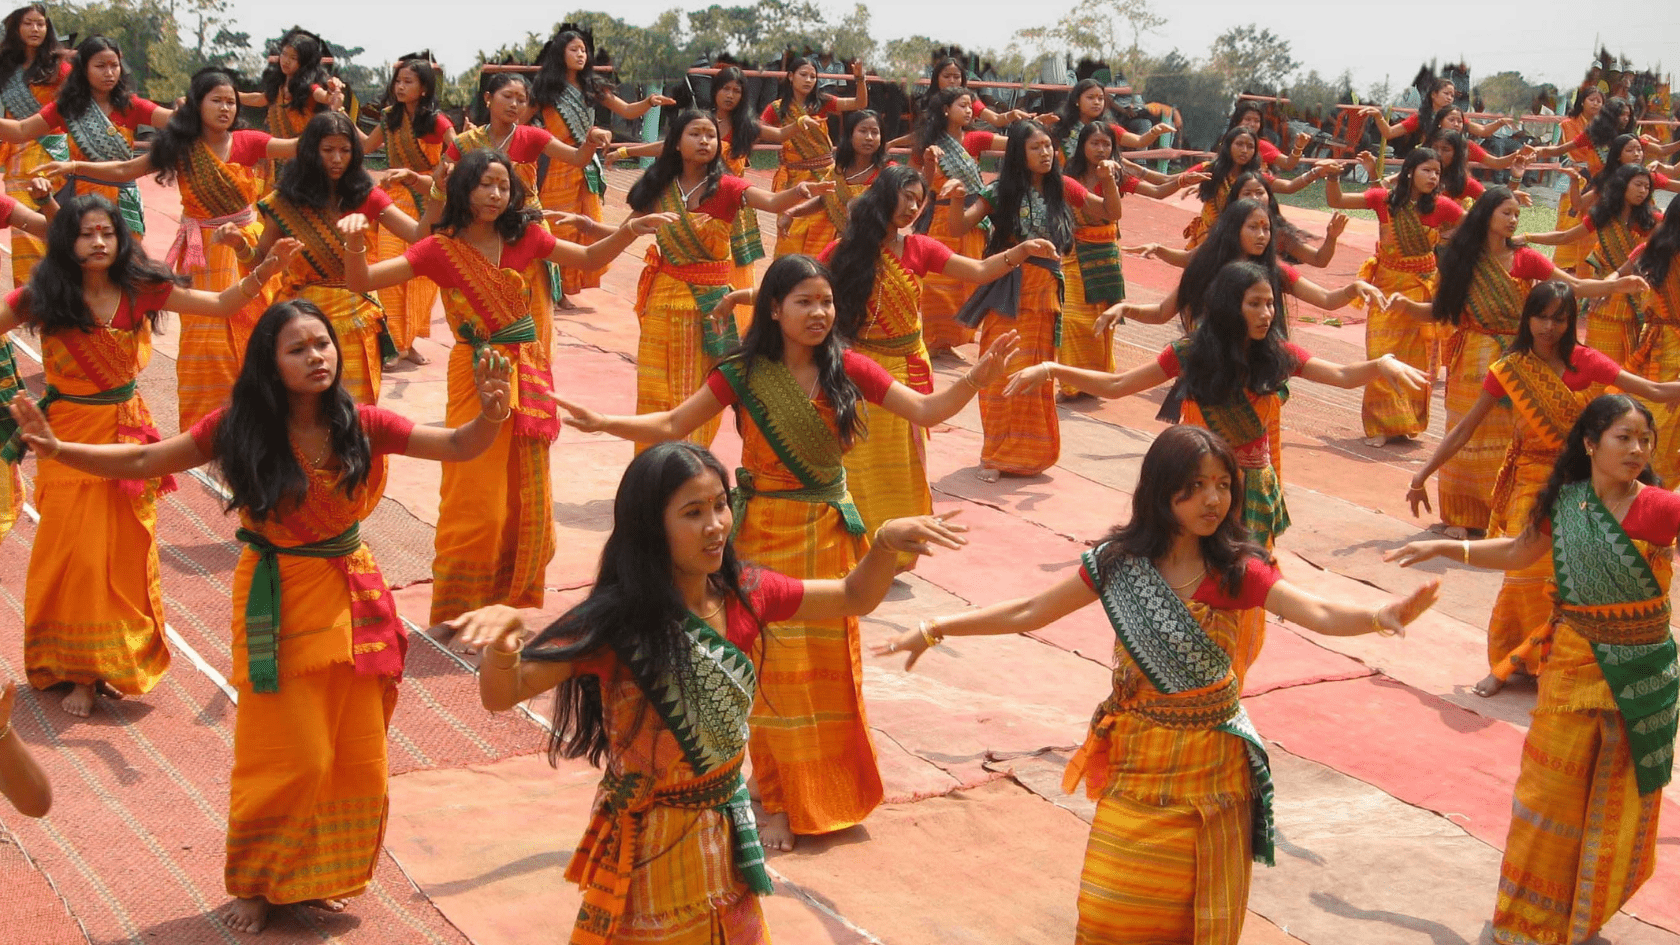 India has a lot of programs and opportunities that make it easier to secure a teaching role and if you have ever wished you could experience India first hand, this is an excellent chance to do so while making a difference in the lives of many.